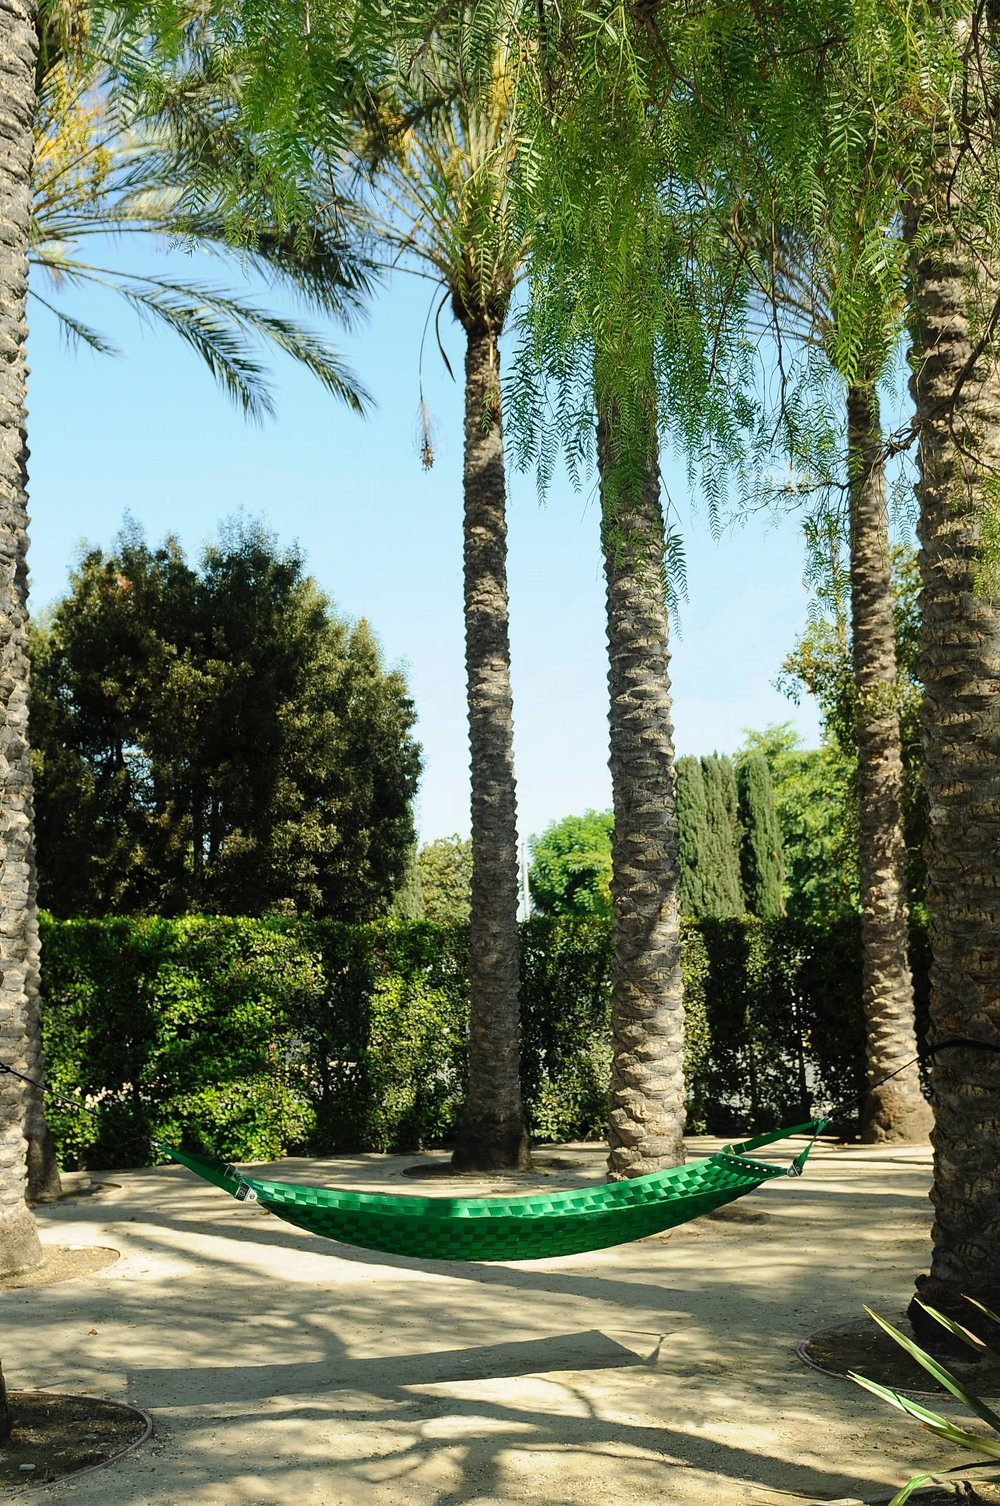 Lime green Ting Sling seatbelt hammock hanging between palm trees, featured in the exterior design surrounding a Los Angeles office space.